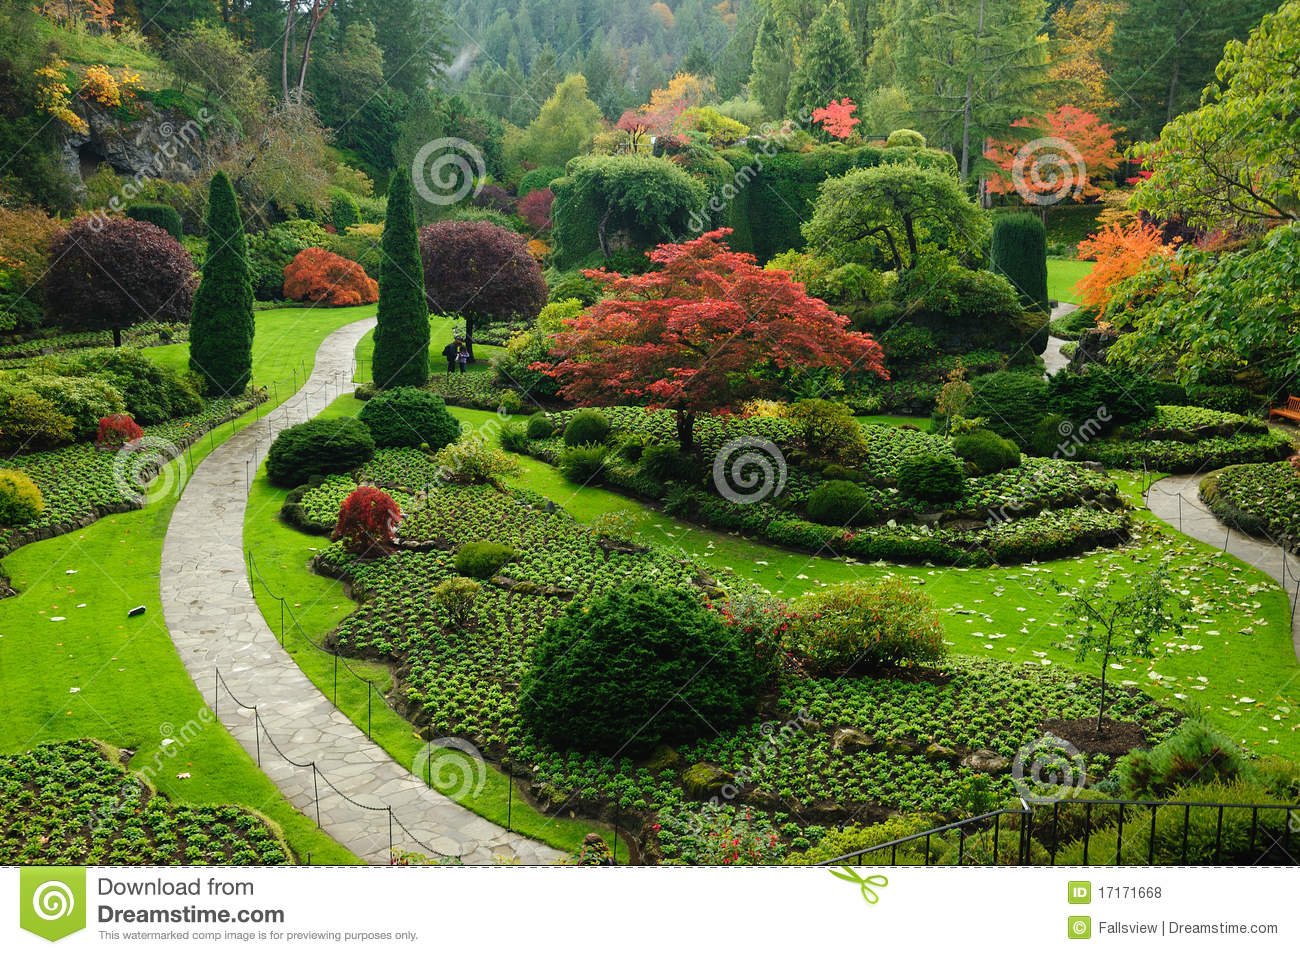 Garden Landscaping Pictures : Garden landscaping royalty free stock photos image